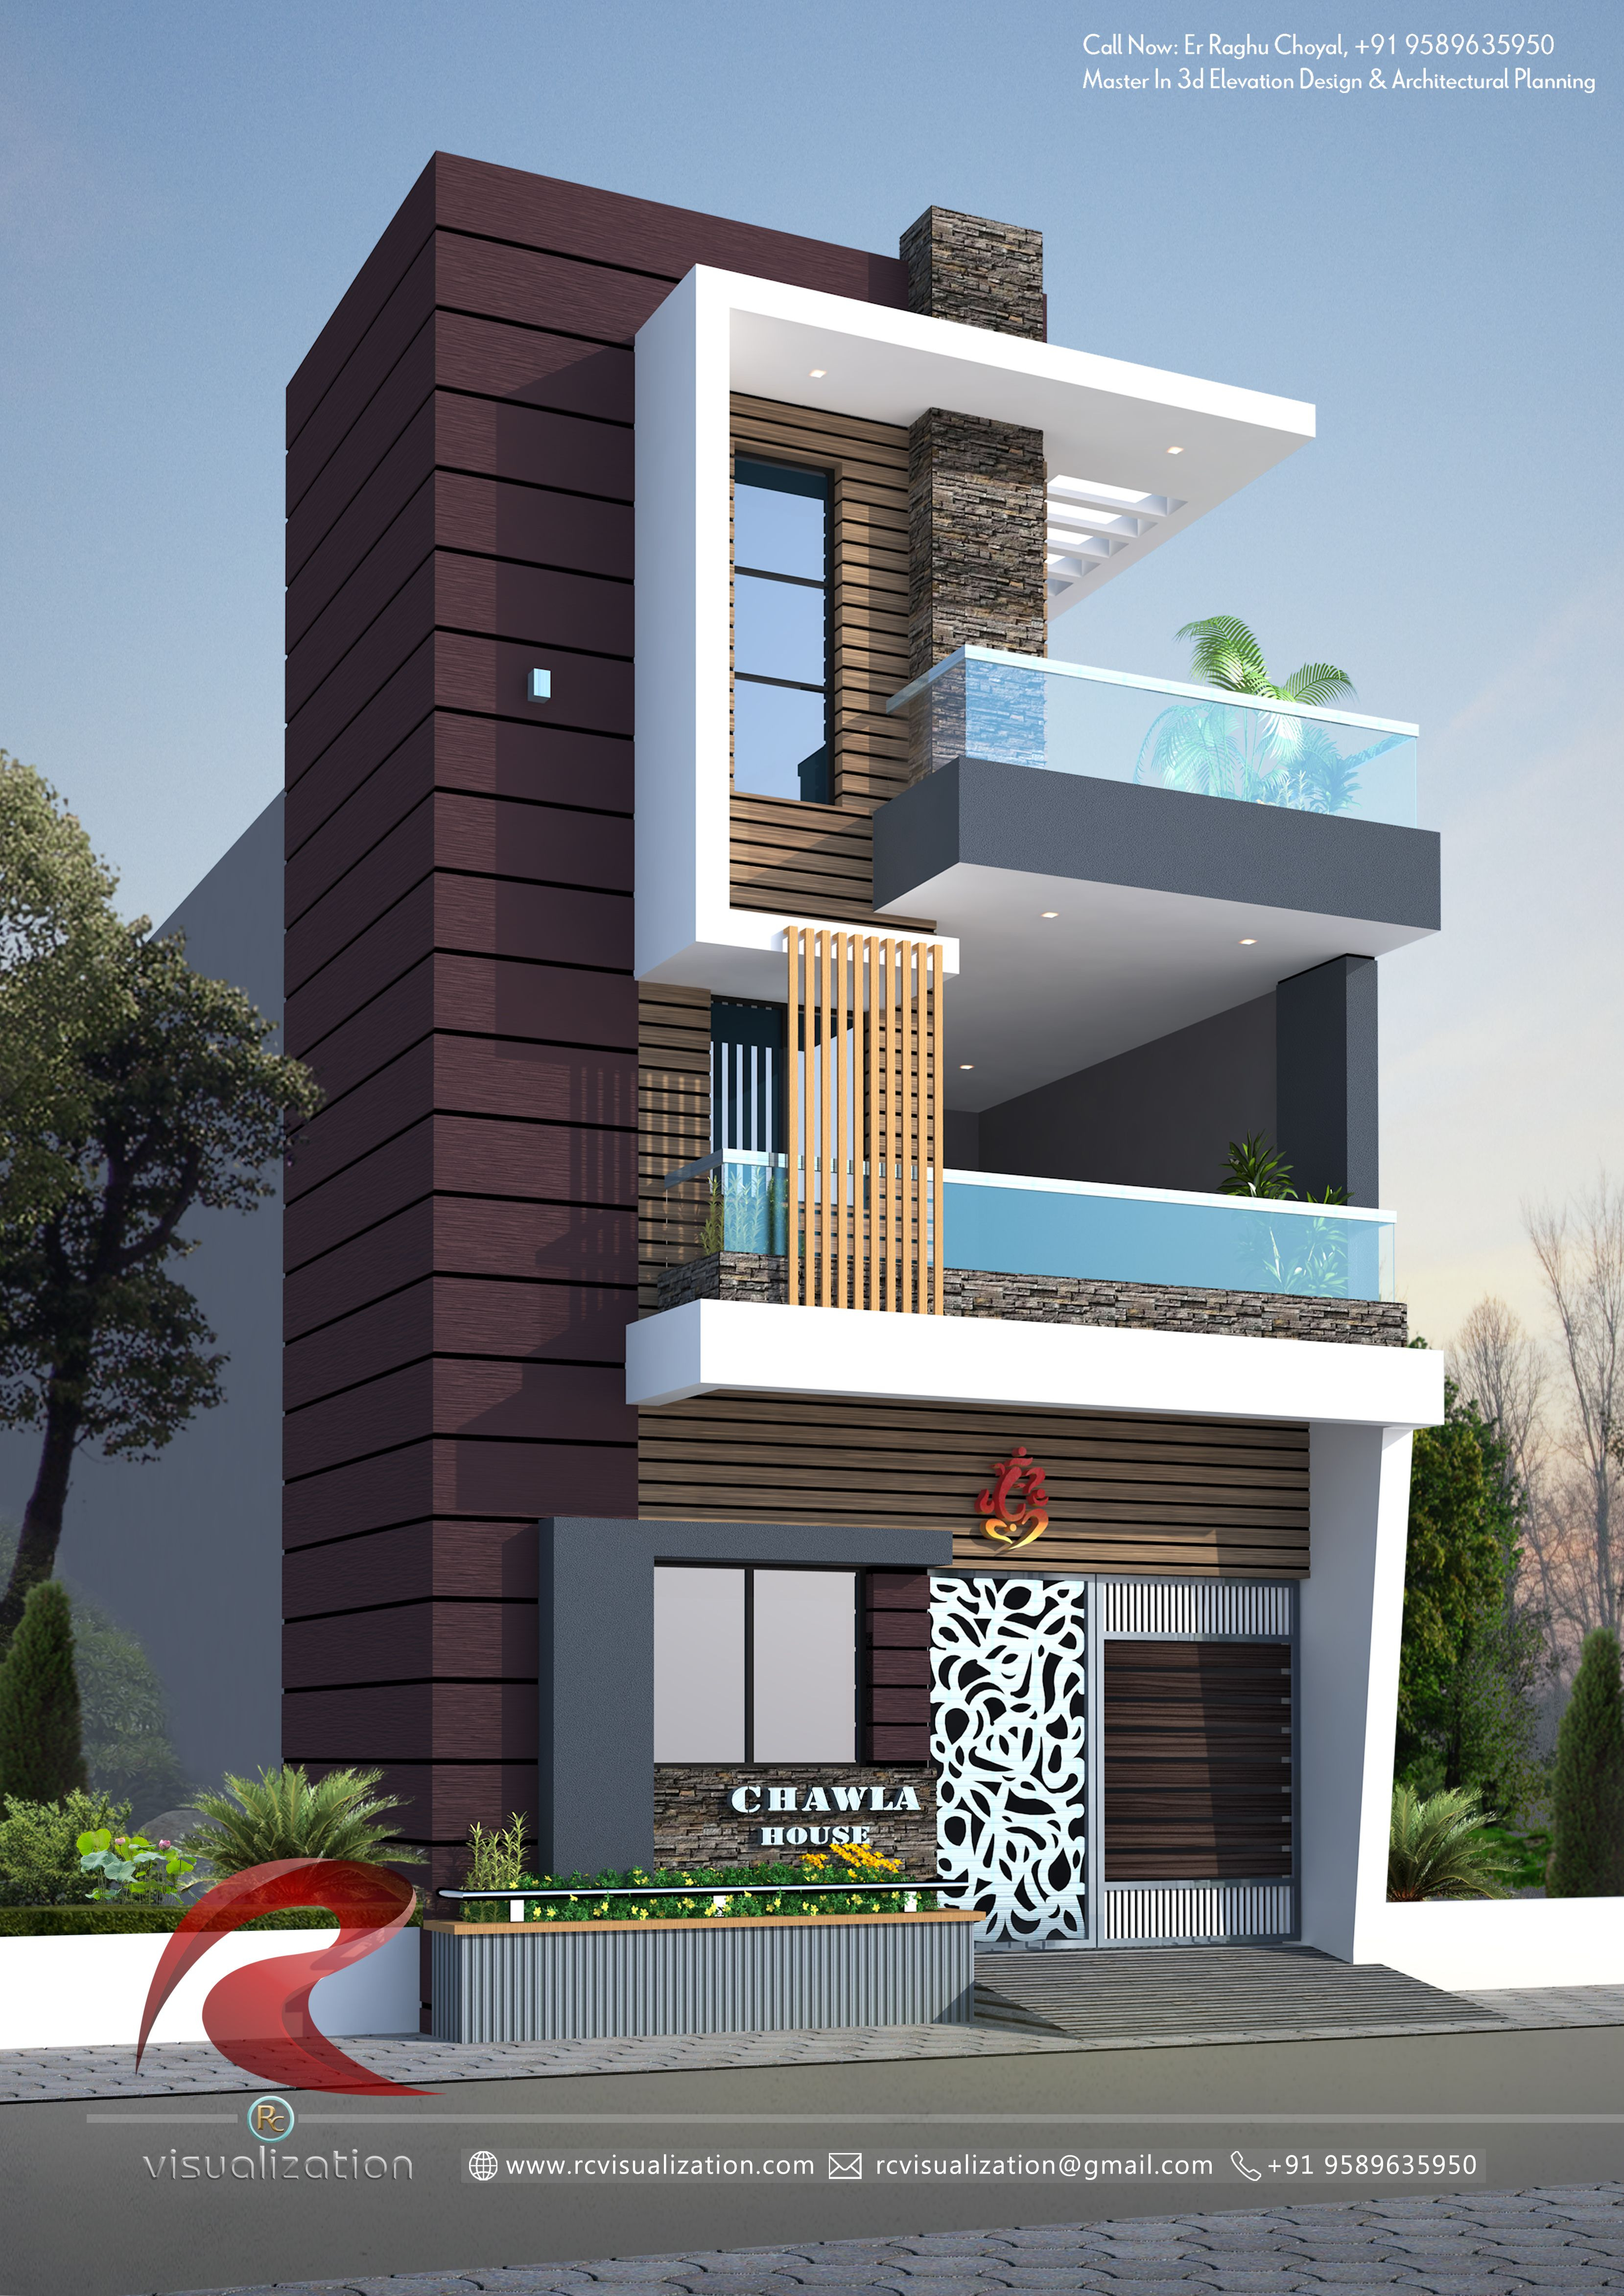 House Elevation for Three Floors Building Unique 3d House Bungalowdesign 3drender Home Innovation